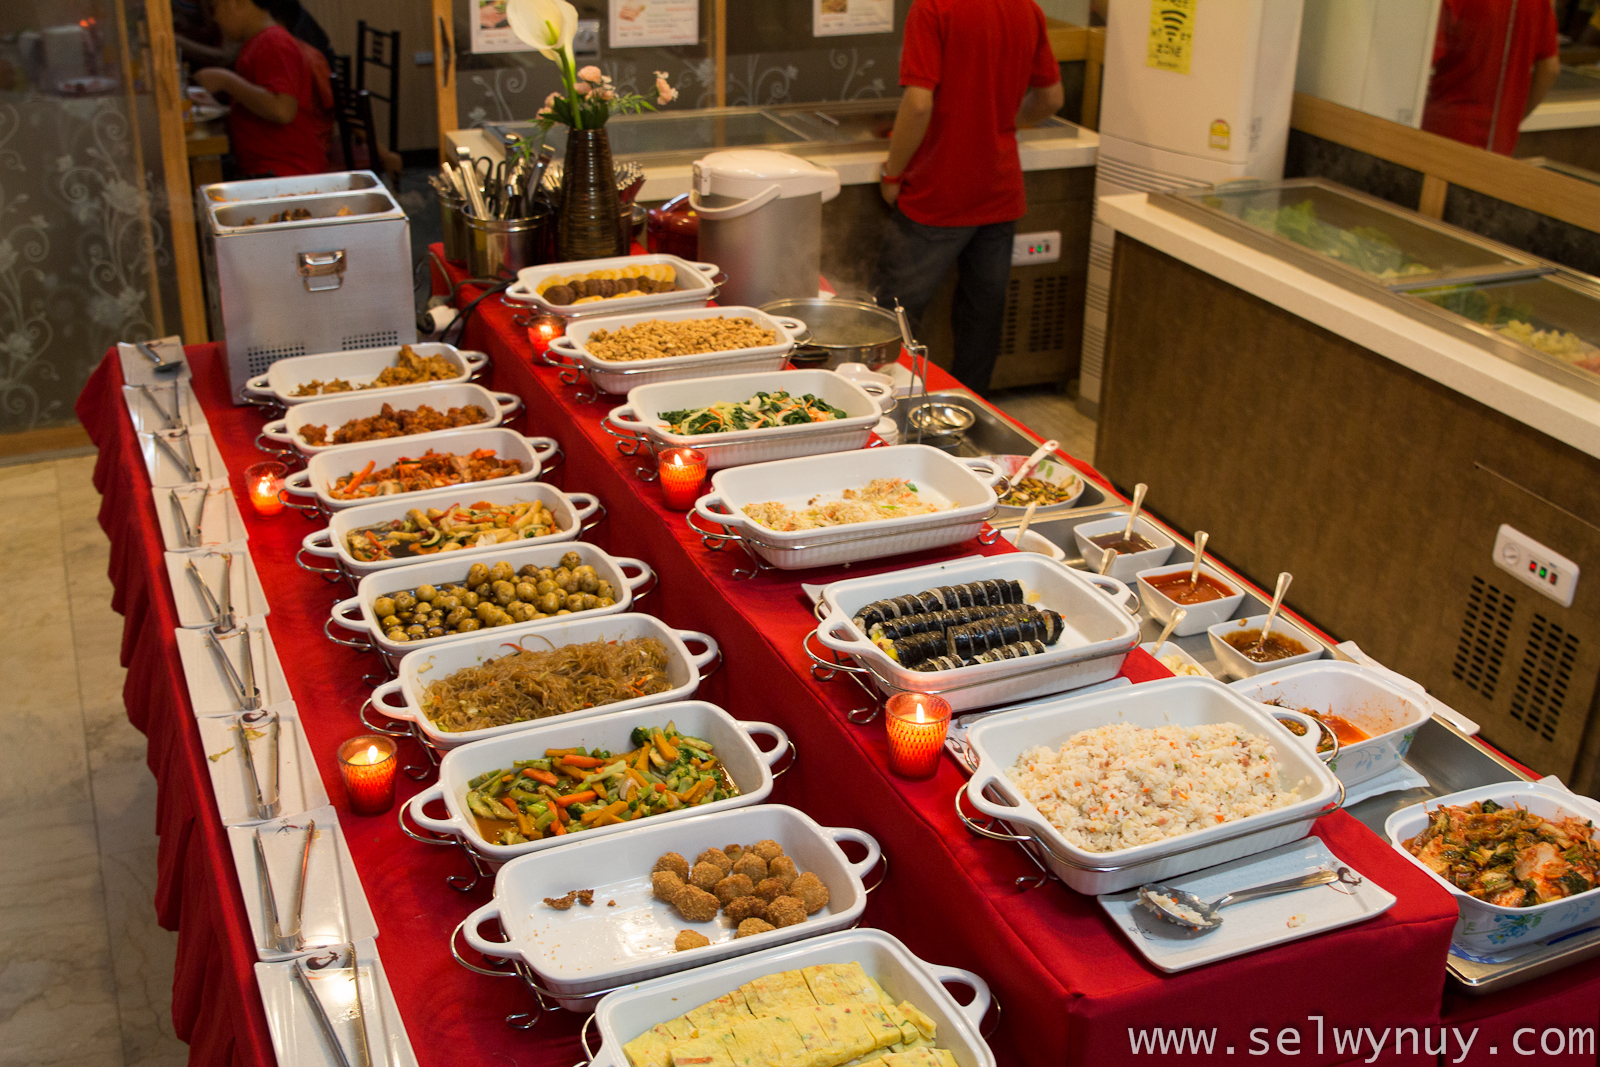 Hwaroro korean grill buffet restaurant review selwyn uy blog - Buffet table integree ...